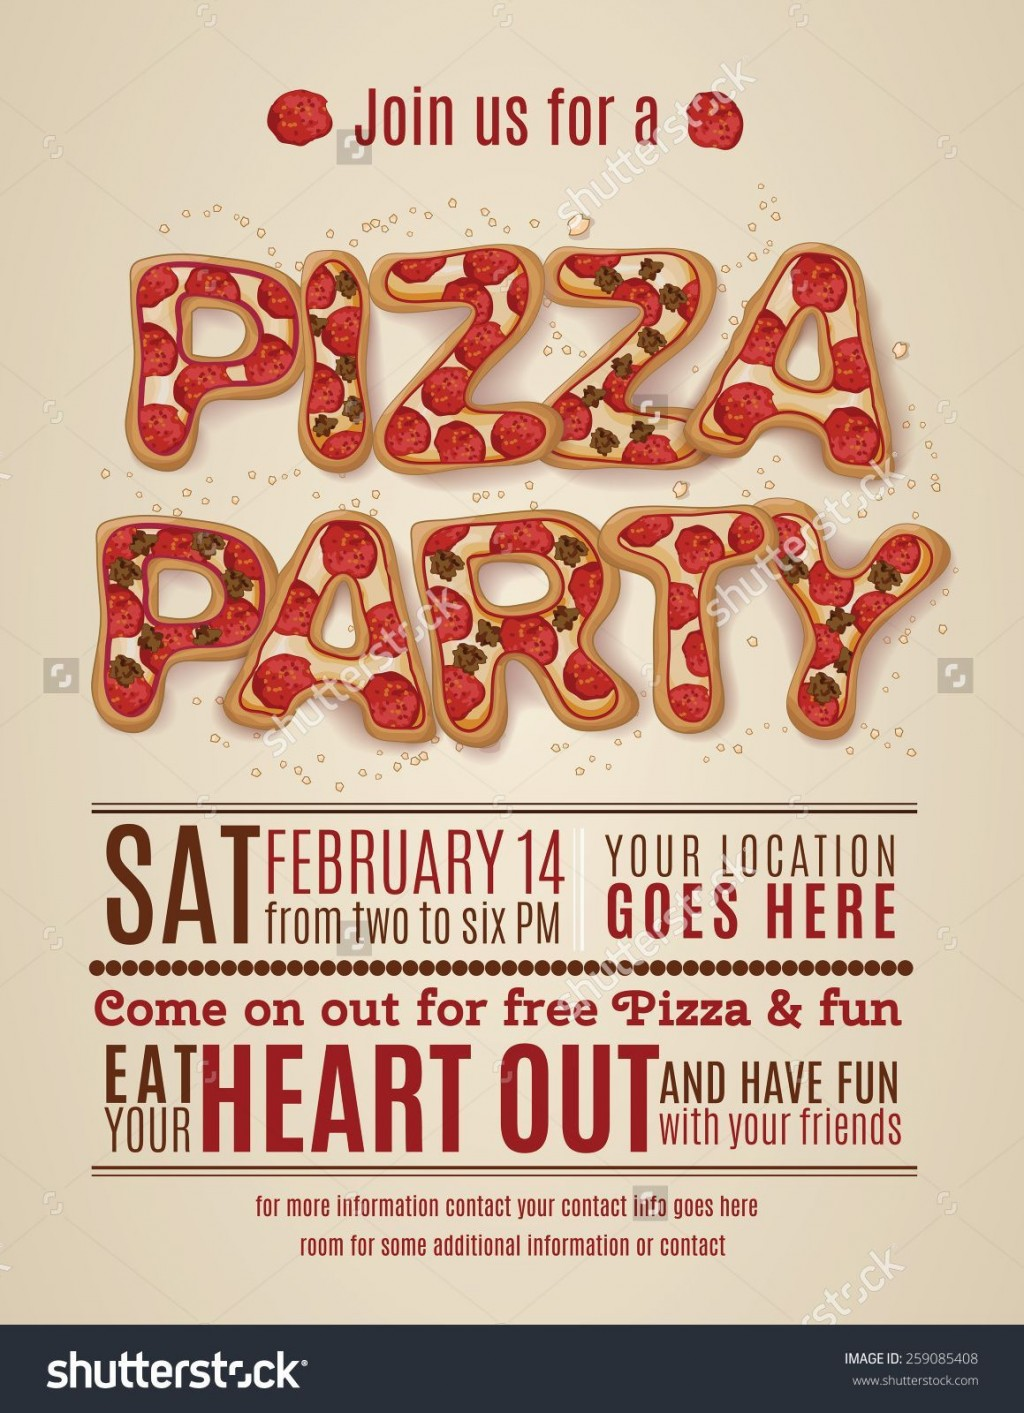 001 Imposing Pizza Party Invitation Template Free High Definition  PrintableLarge